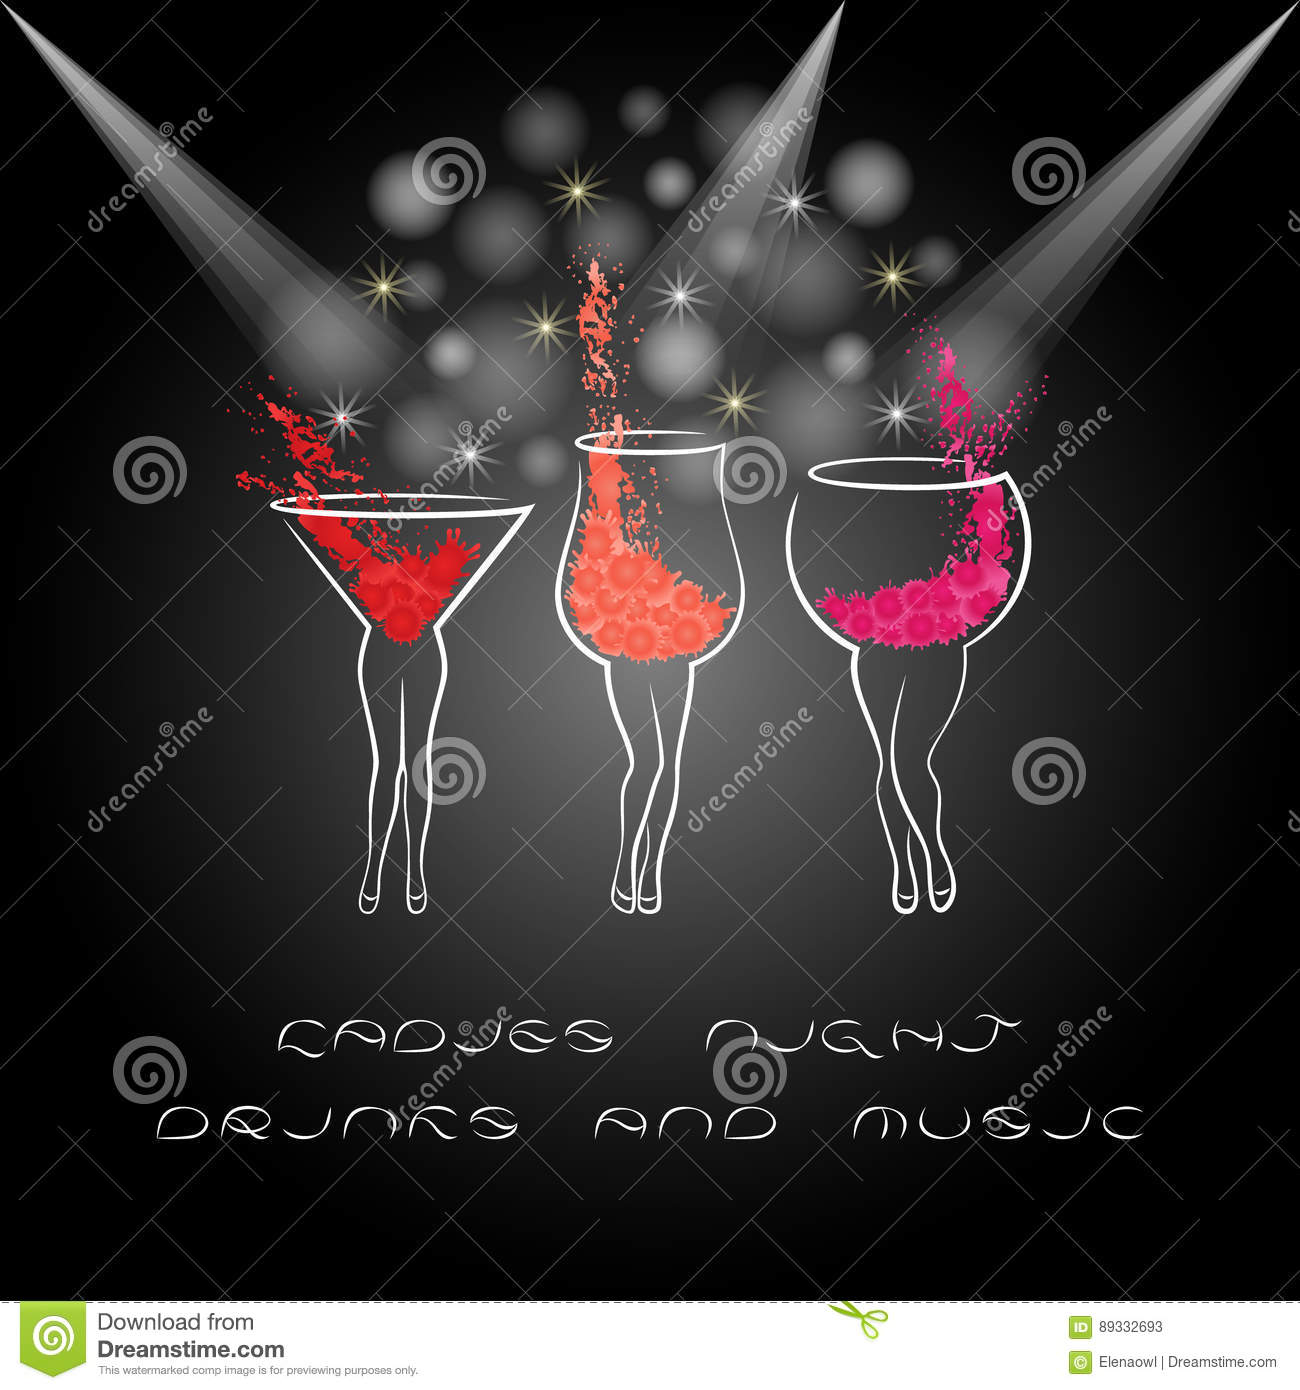 Ladies Night Poster With Cocktails Design For Women Party